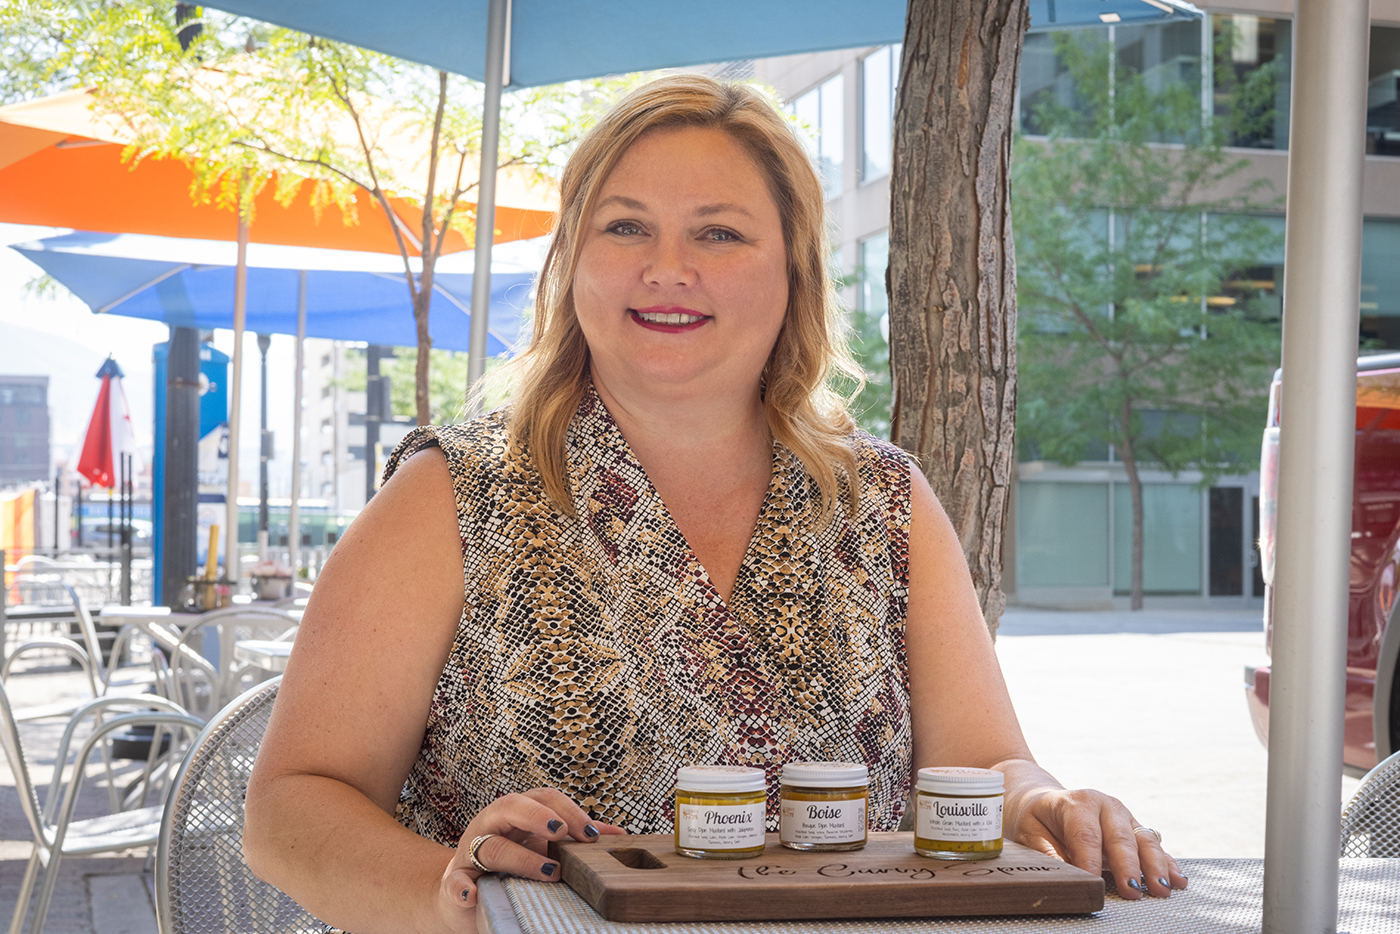 Using simple ingredients, the Curvy Spoon is a small-batch, artisanal mustard company owned and operated by Valerie Koonce.